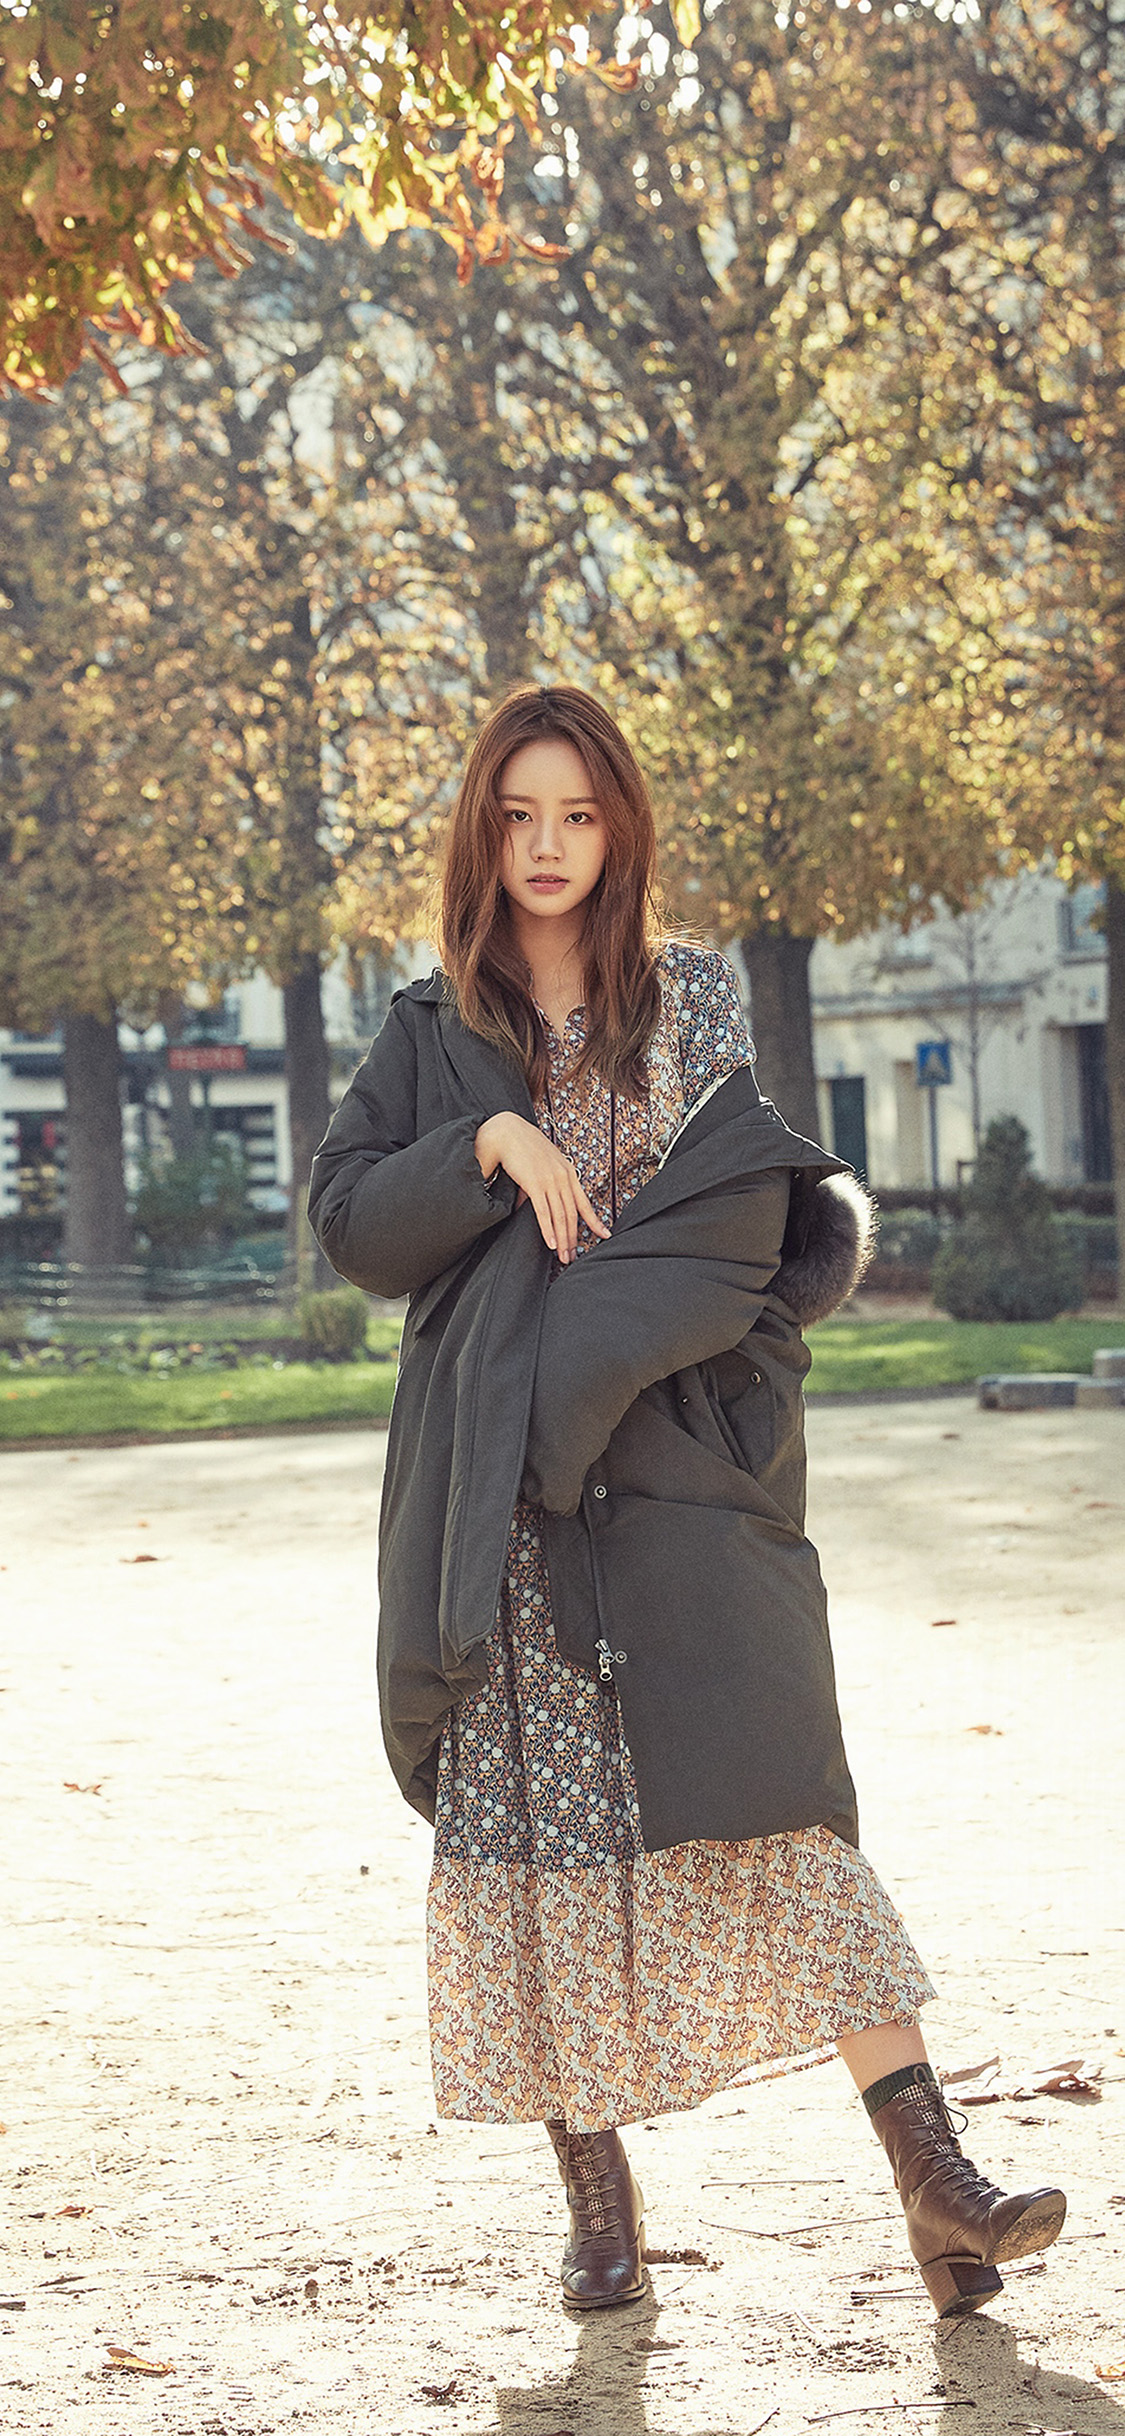 iPhonexpapers.com-Apple-iPhone-wallpaper-hr55-kpop-girl-hyeri-girlsday-fall-tree-autumn